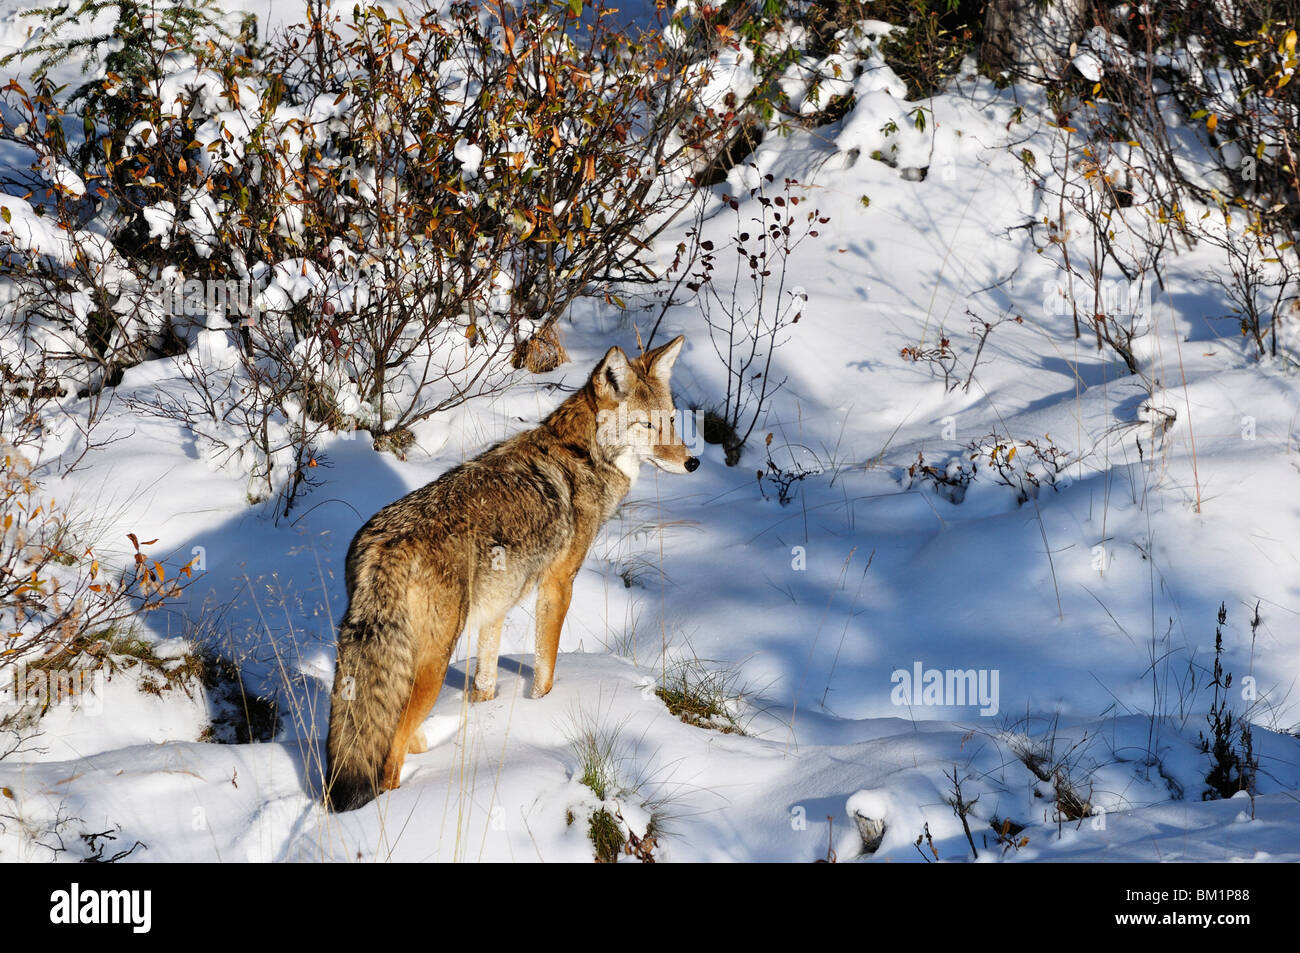 Coyote walking through snow, Kananaskis Country, Alberta, Canada, North America - Stock Image